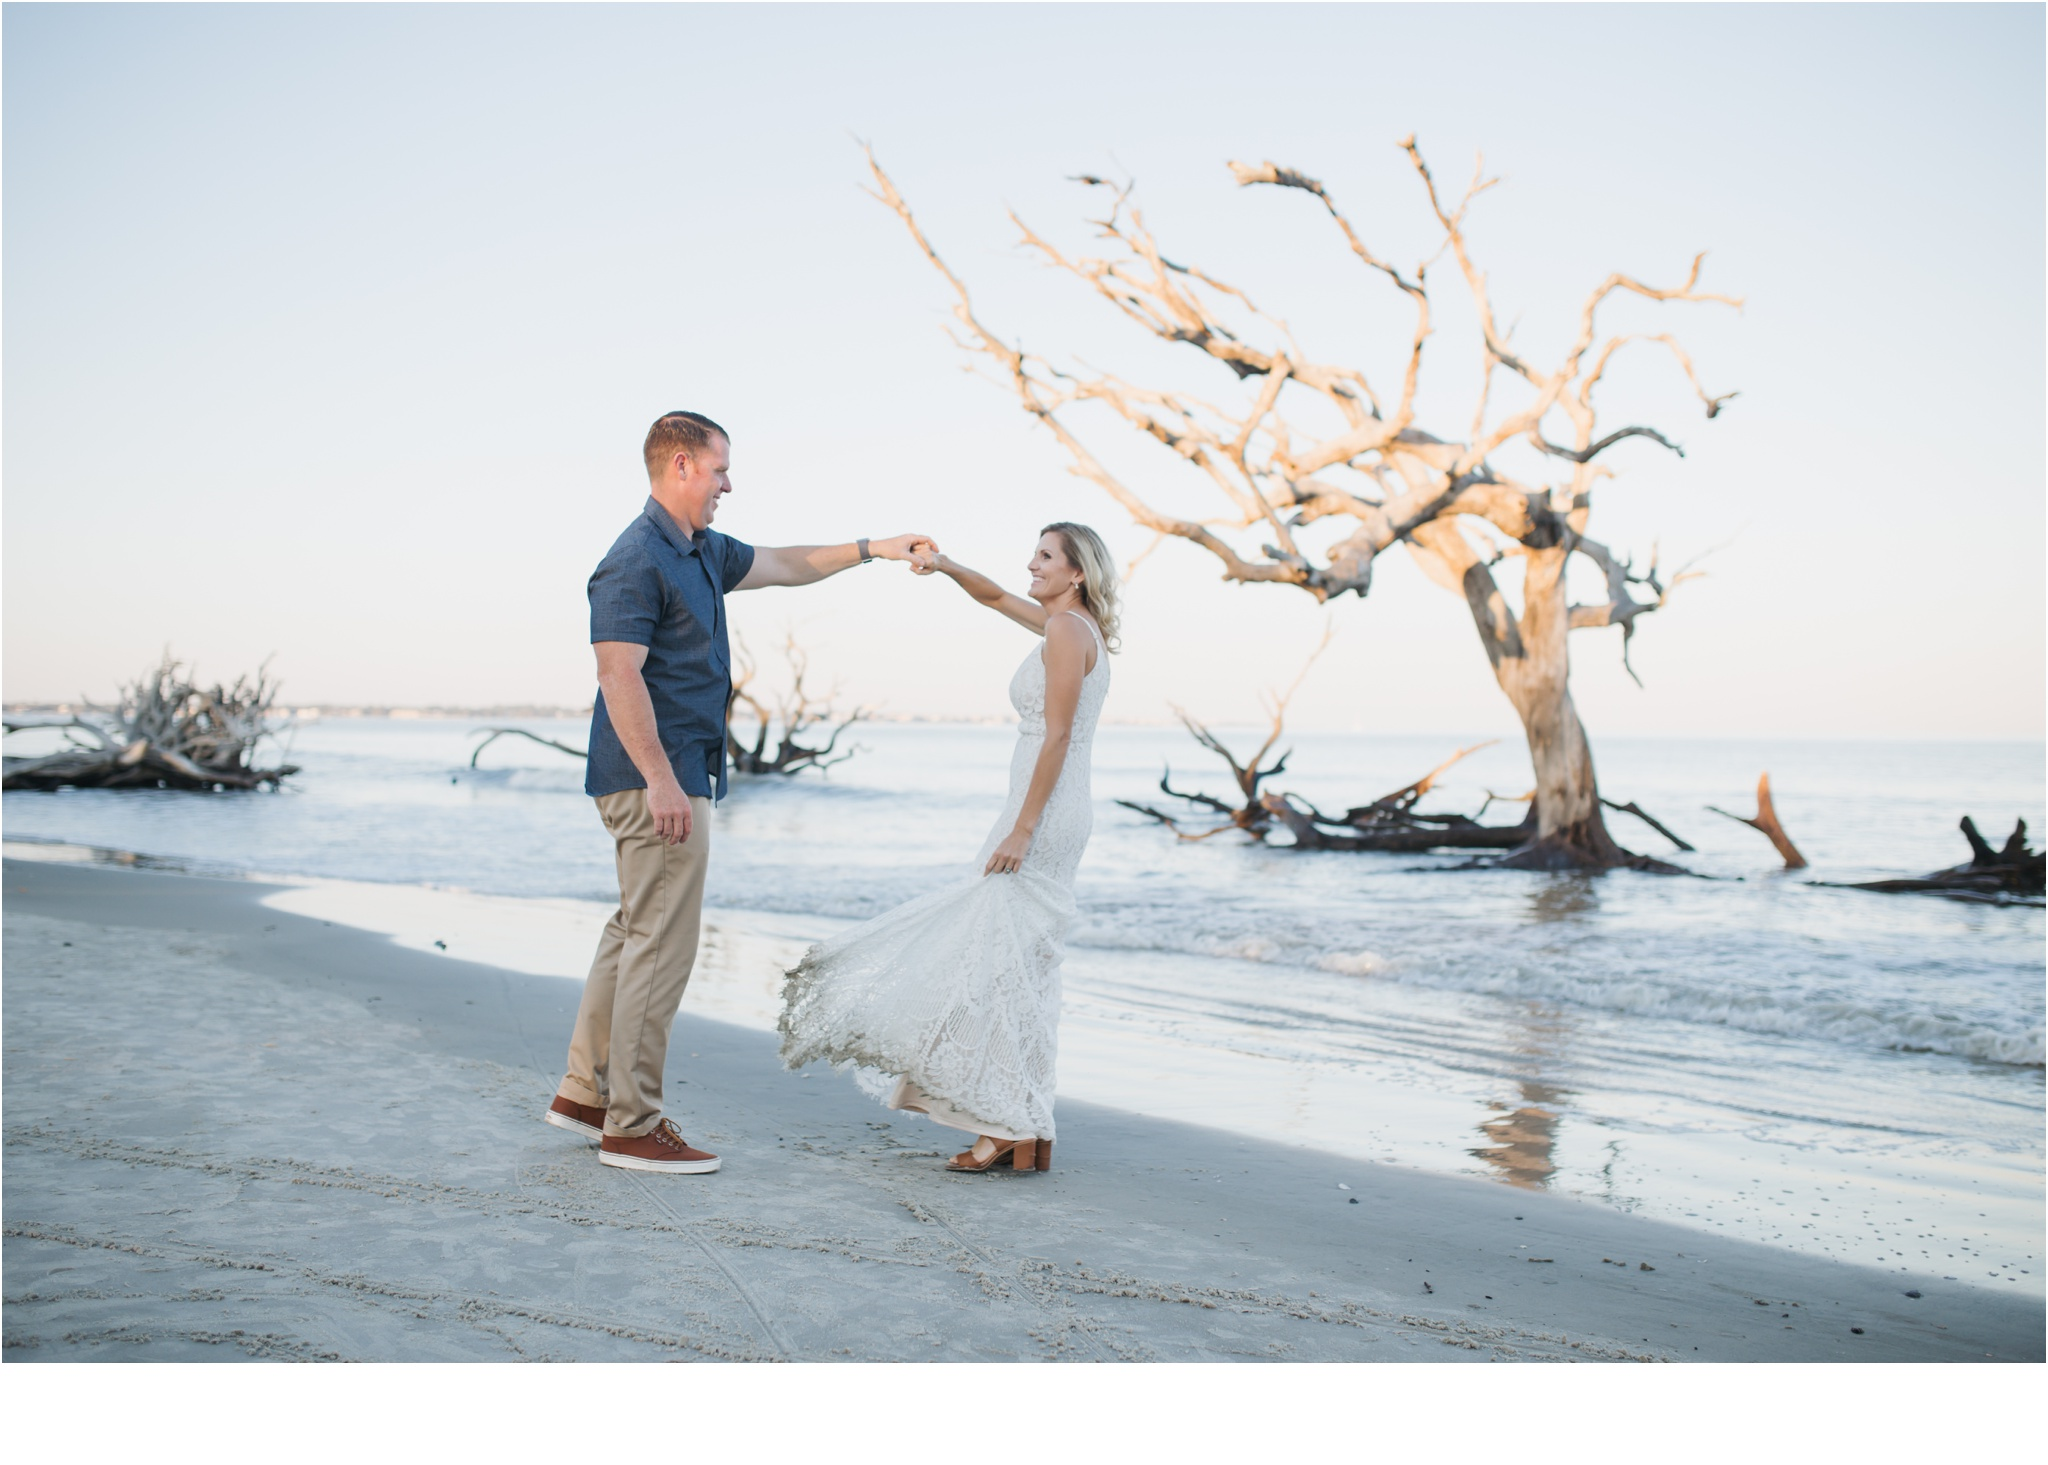 Rainey_Gregg_Photography_St._Simons_Island_Georgia_California_Wedding_Portrait_Photography_1593.jpg